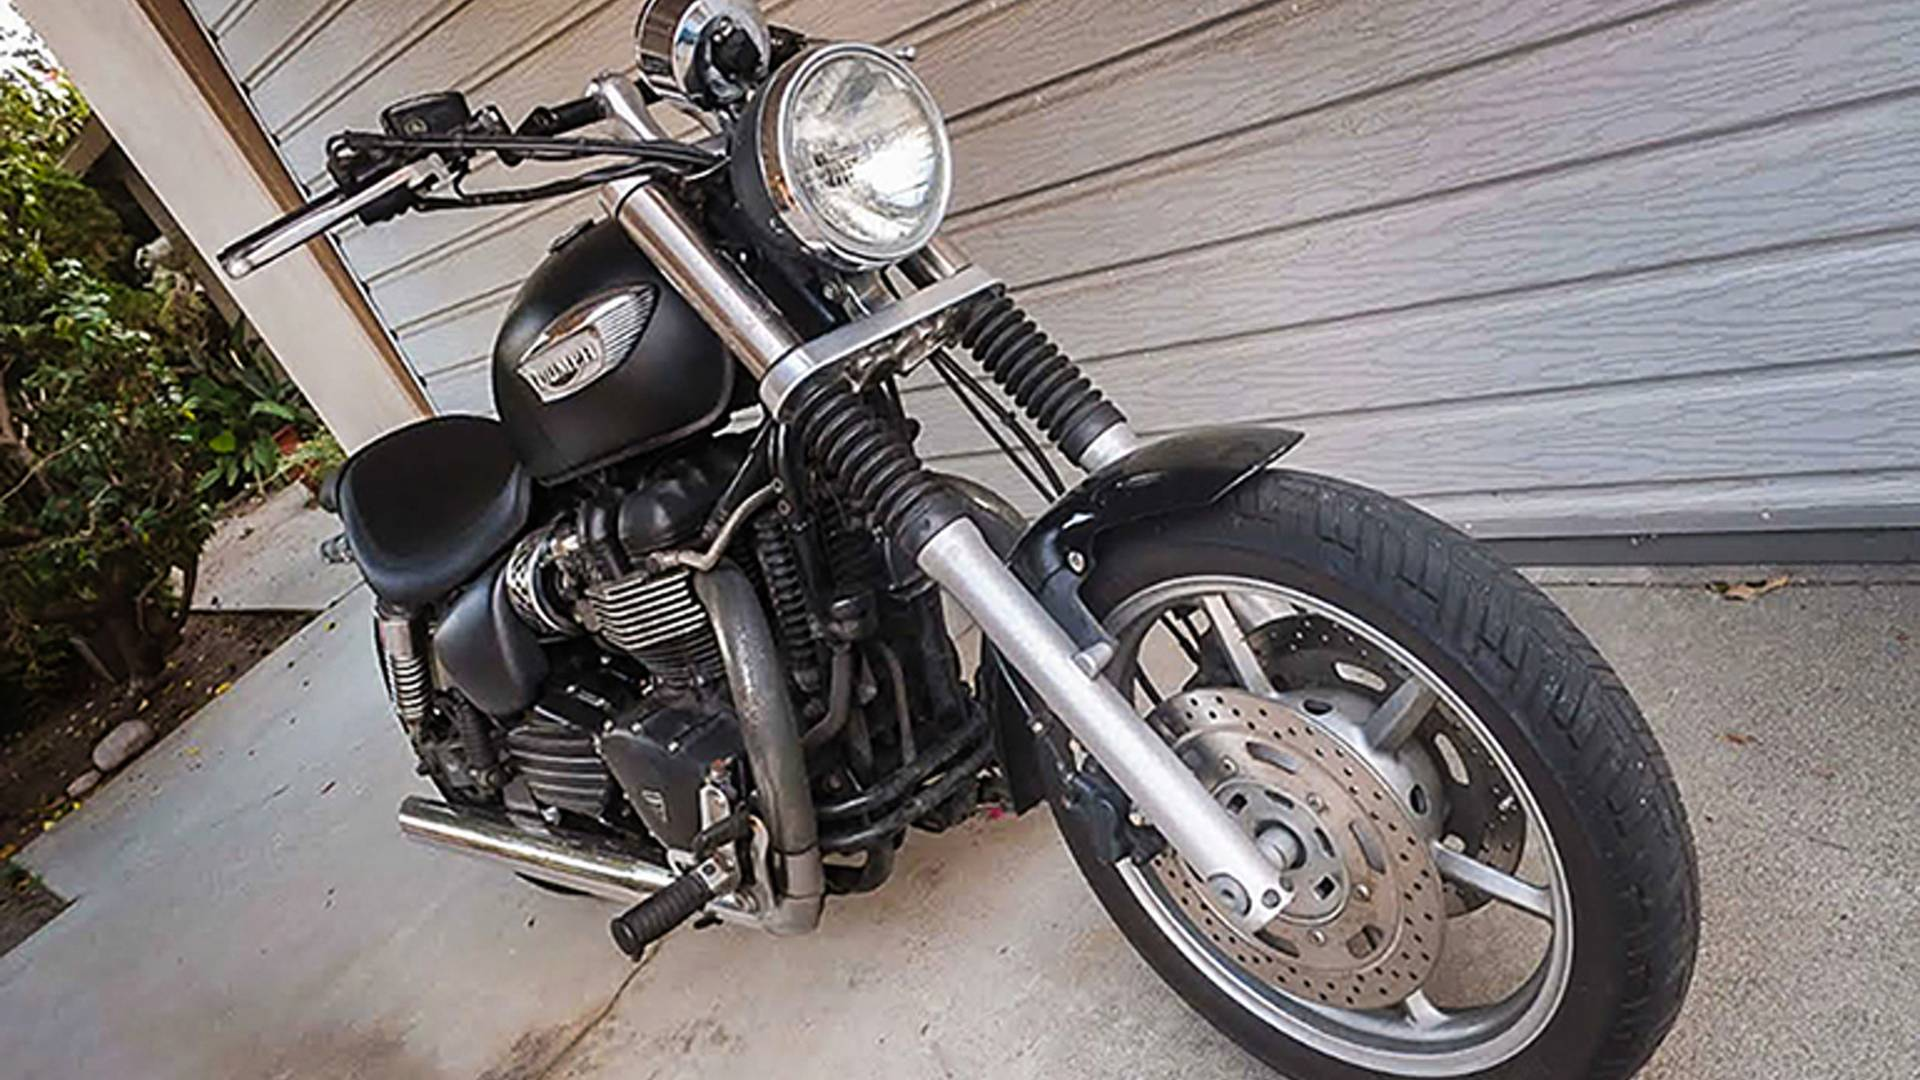 Customizing A Triumph Speedmaster How Hard Could It Be